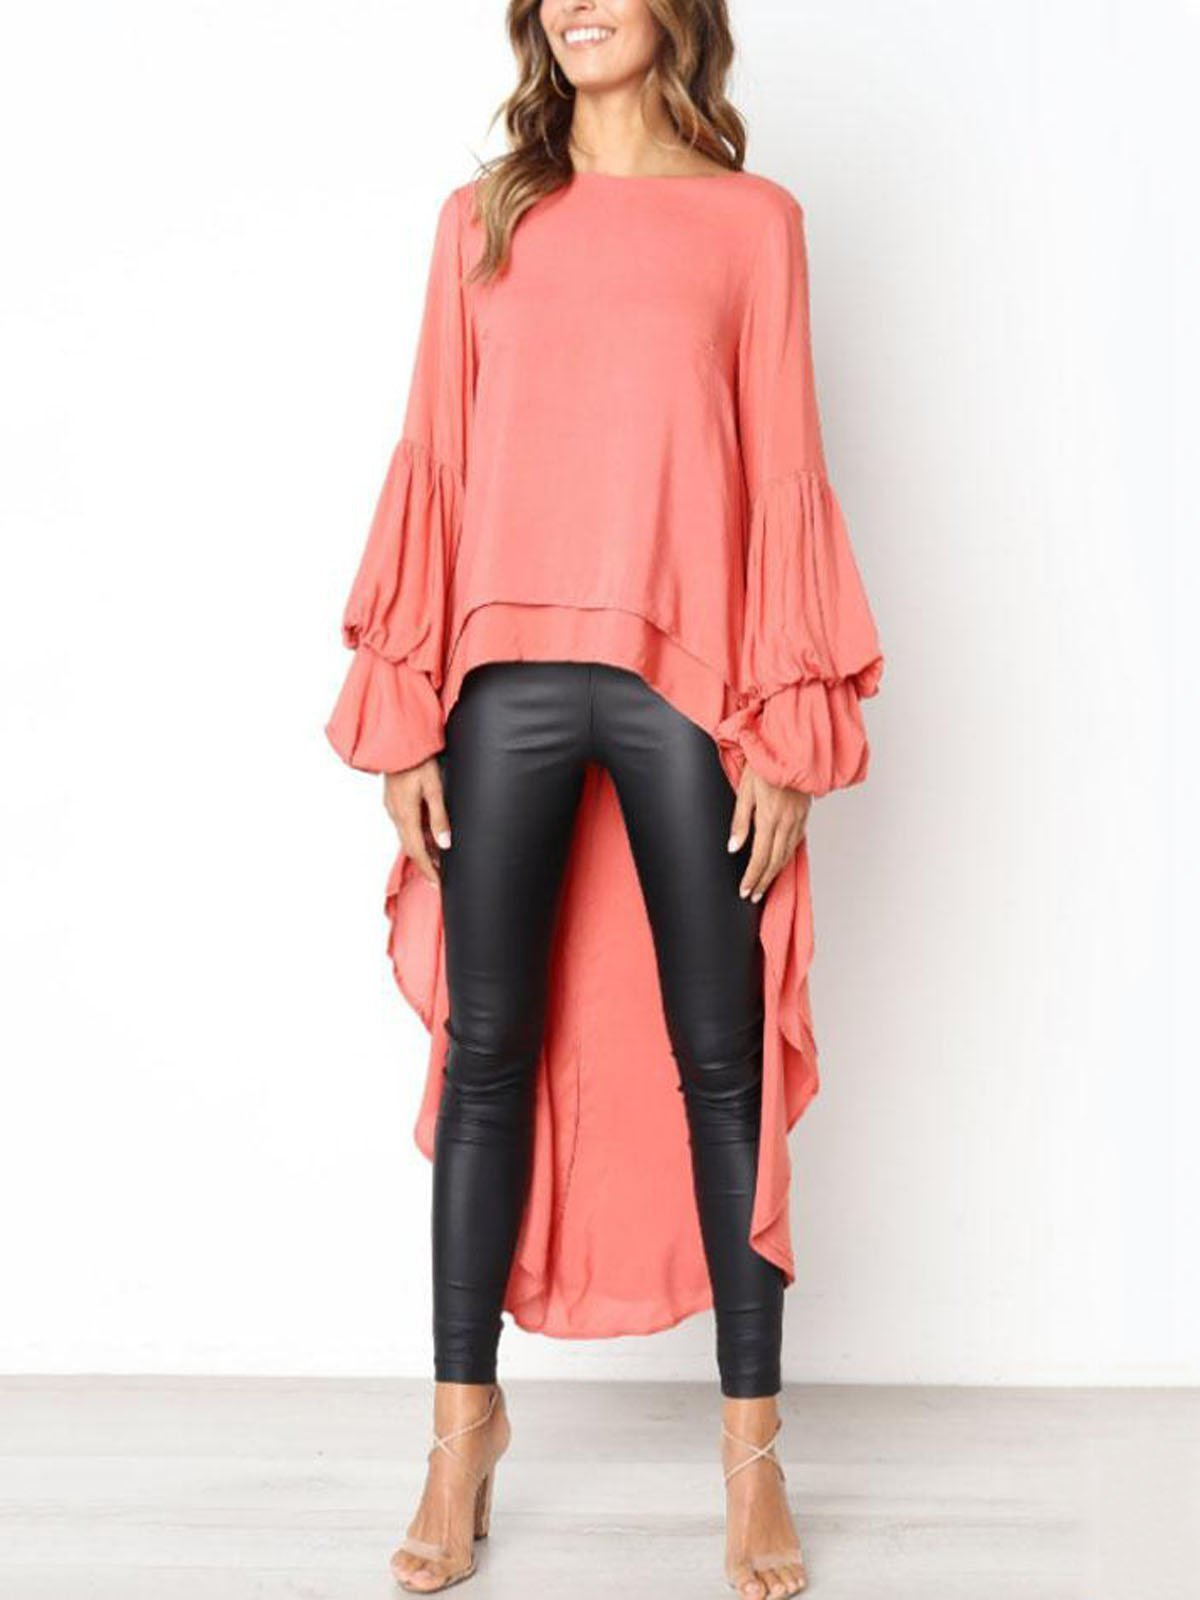 lezeda.com Tops Rose / S Plus Size Casual Asymmetrical Ruffled Long Sleeve Solid Blouses